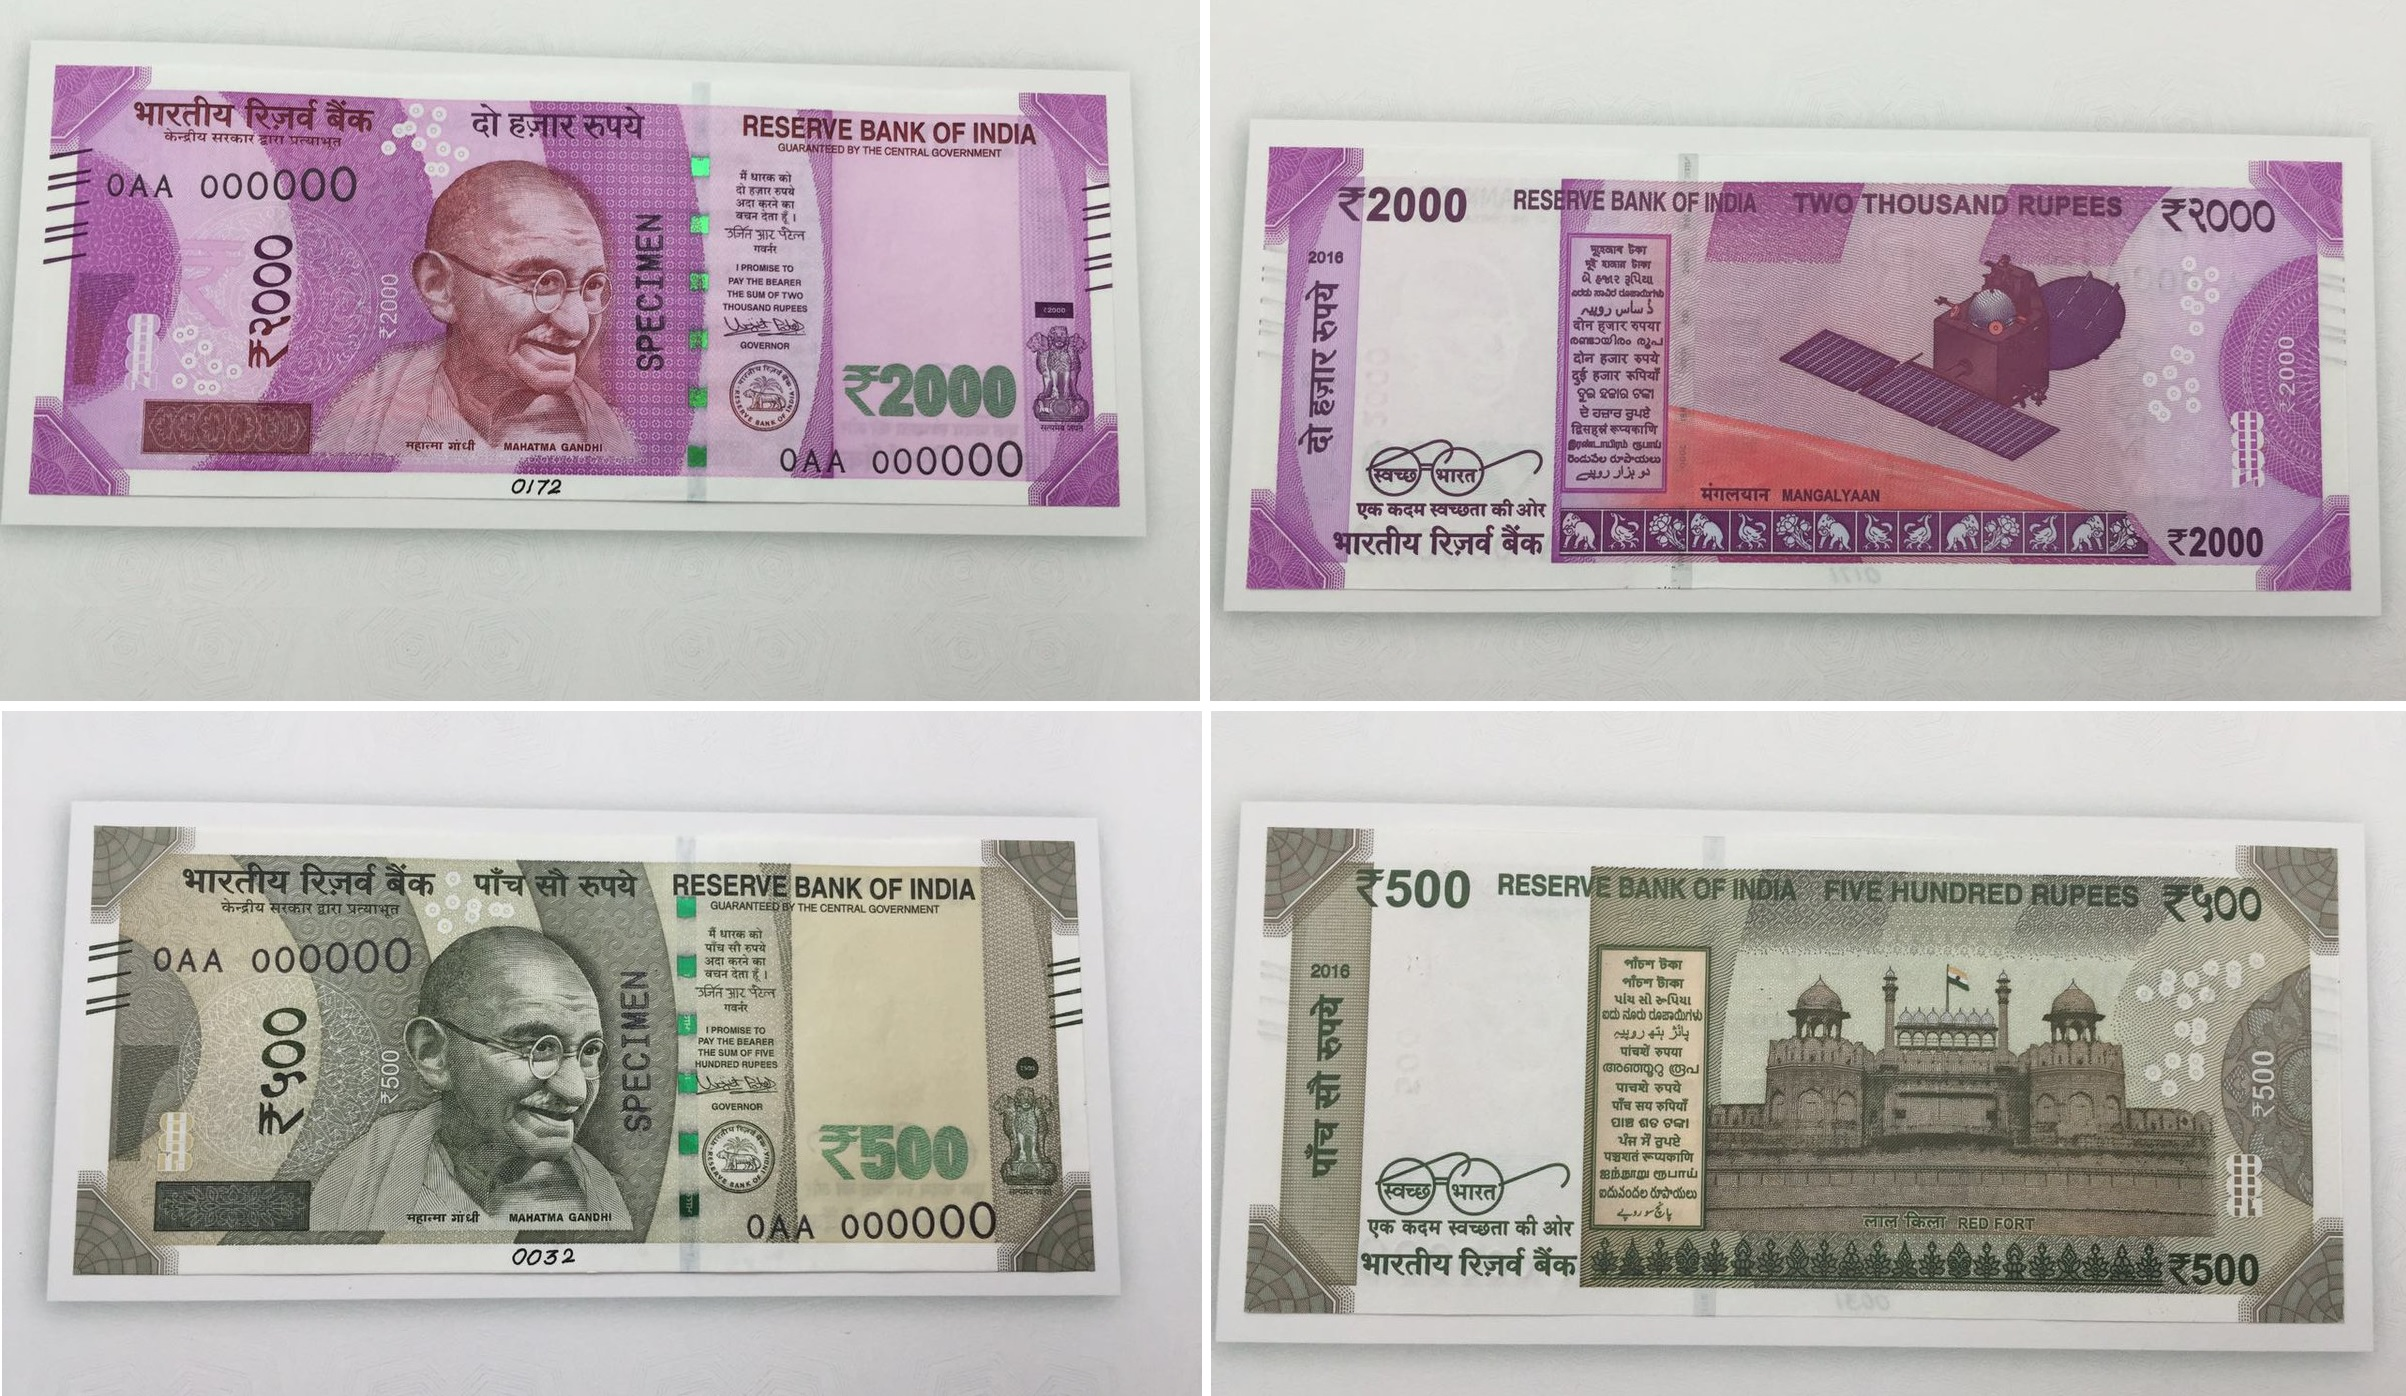 Rs 500 and Rs 2,000 New Indian Currency Notes and considers 'illegal' in Nepal